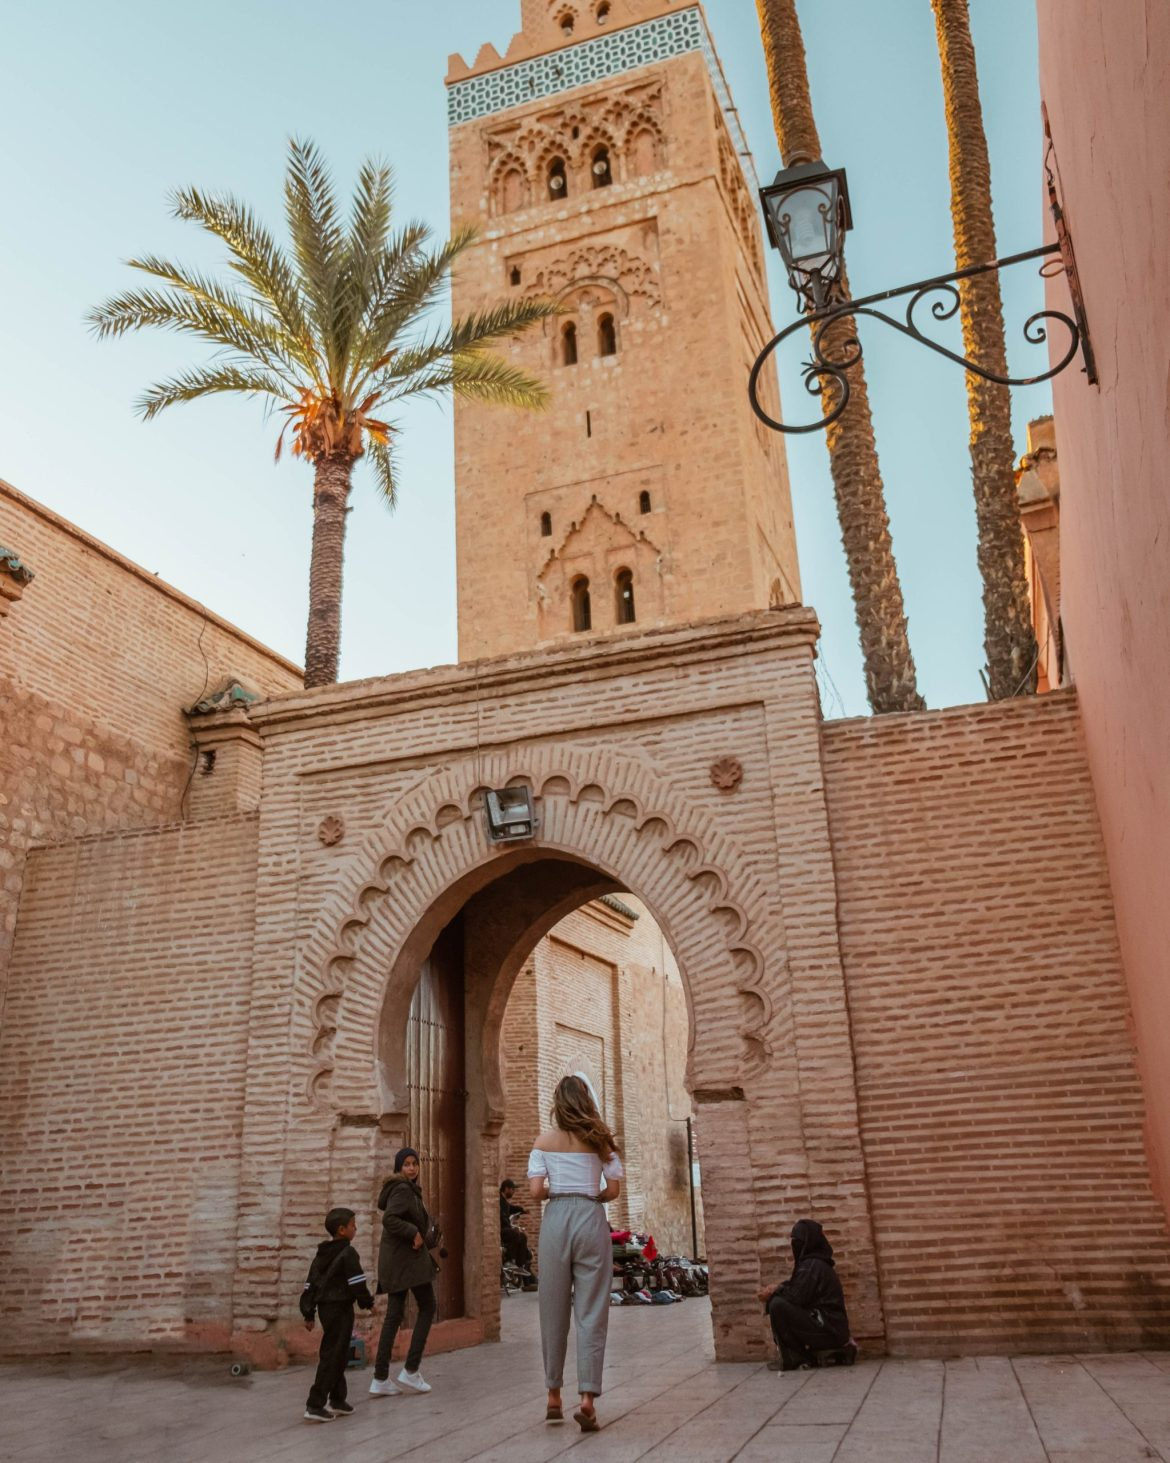 Koutoubia mosque tower in Marrakech - a quick travel guide to Marrakech